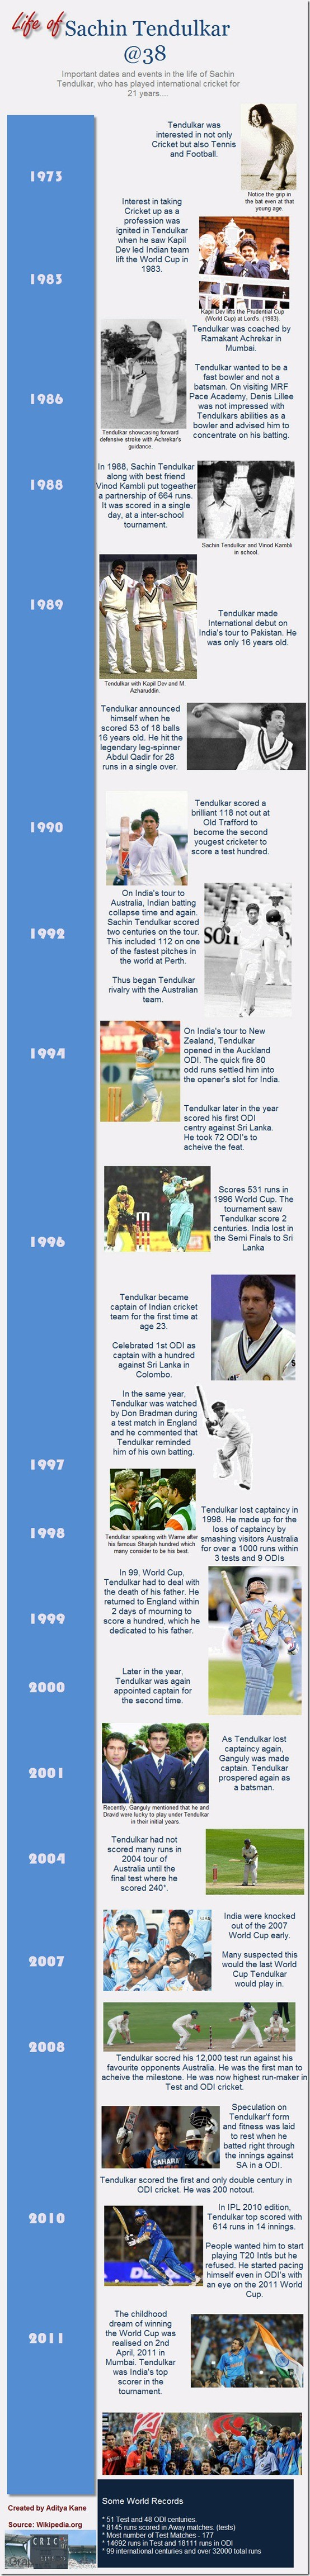 world's Greatest Cricket Player of All Time